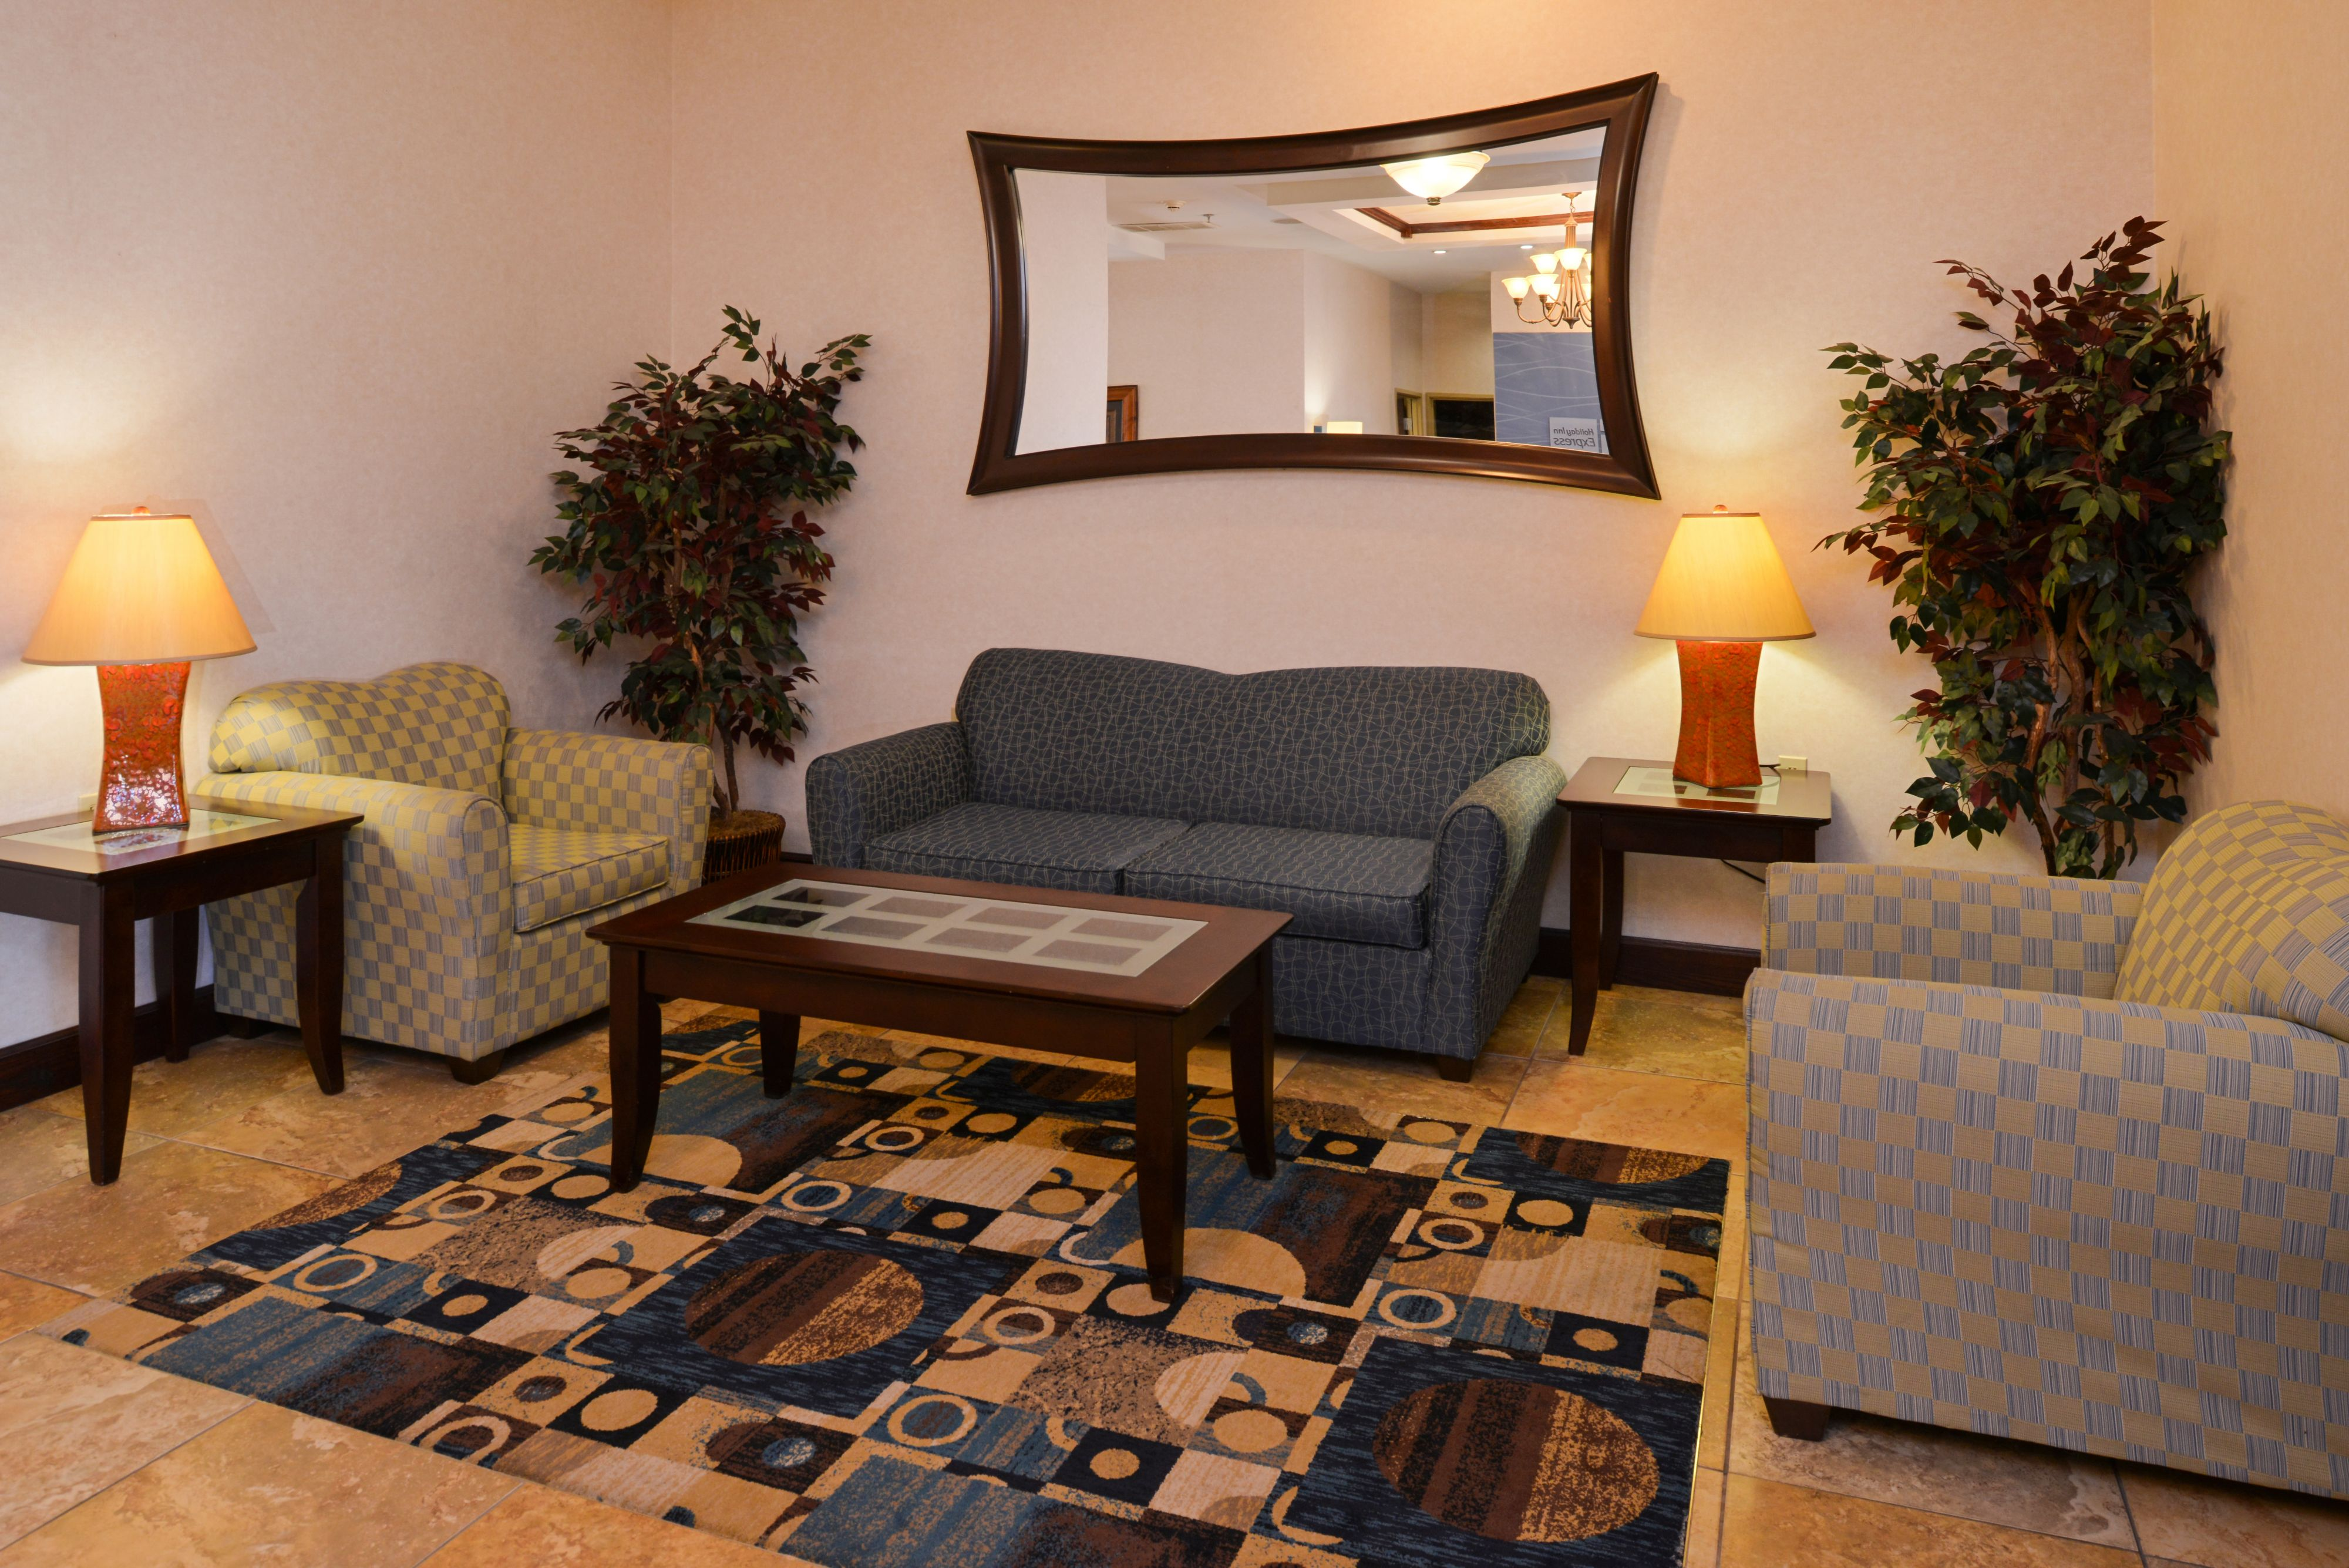 Holiday Inn Express & Suites White Haven - Poconos image 8